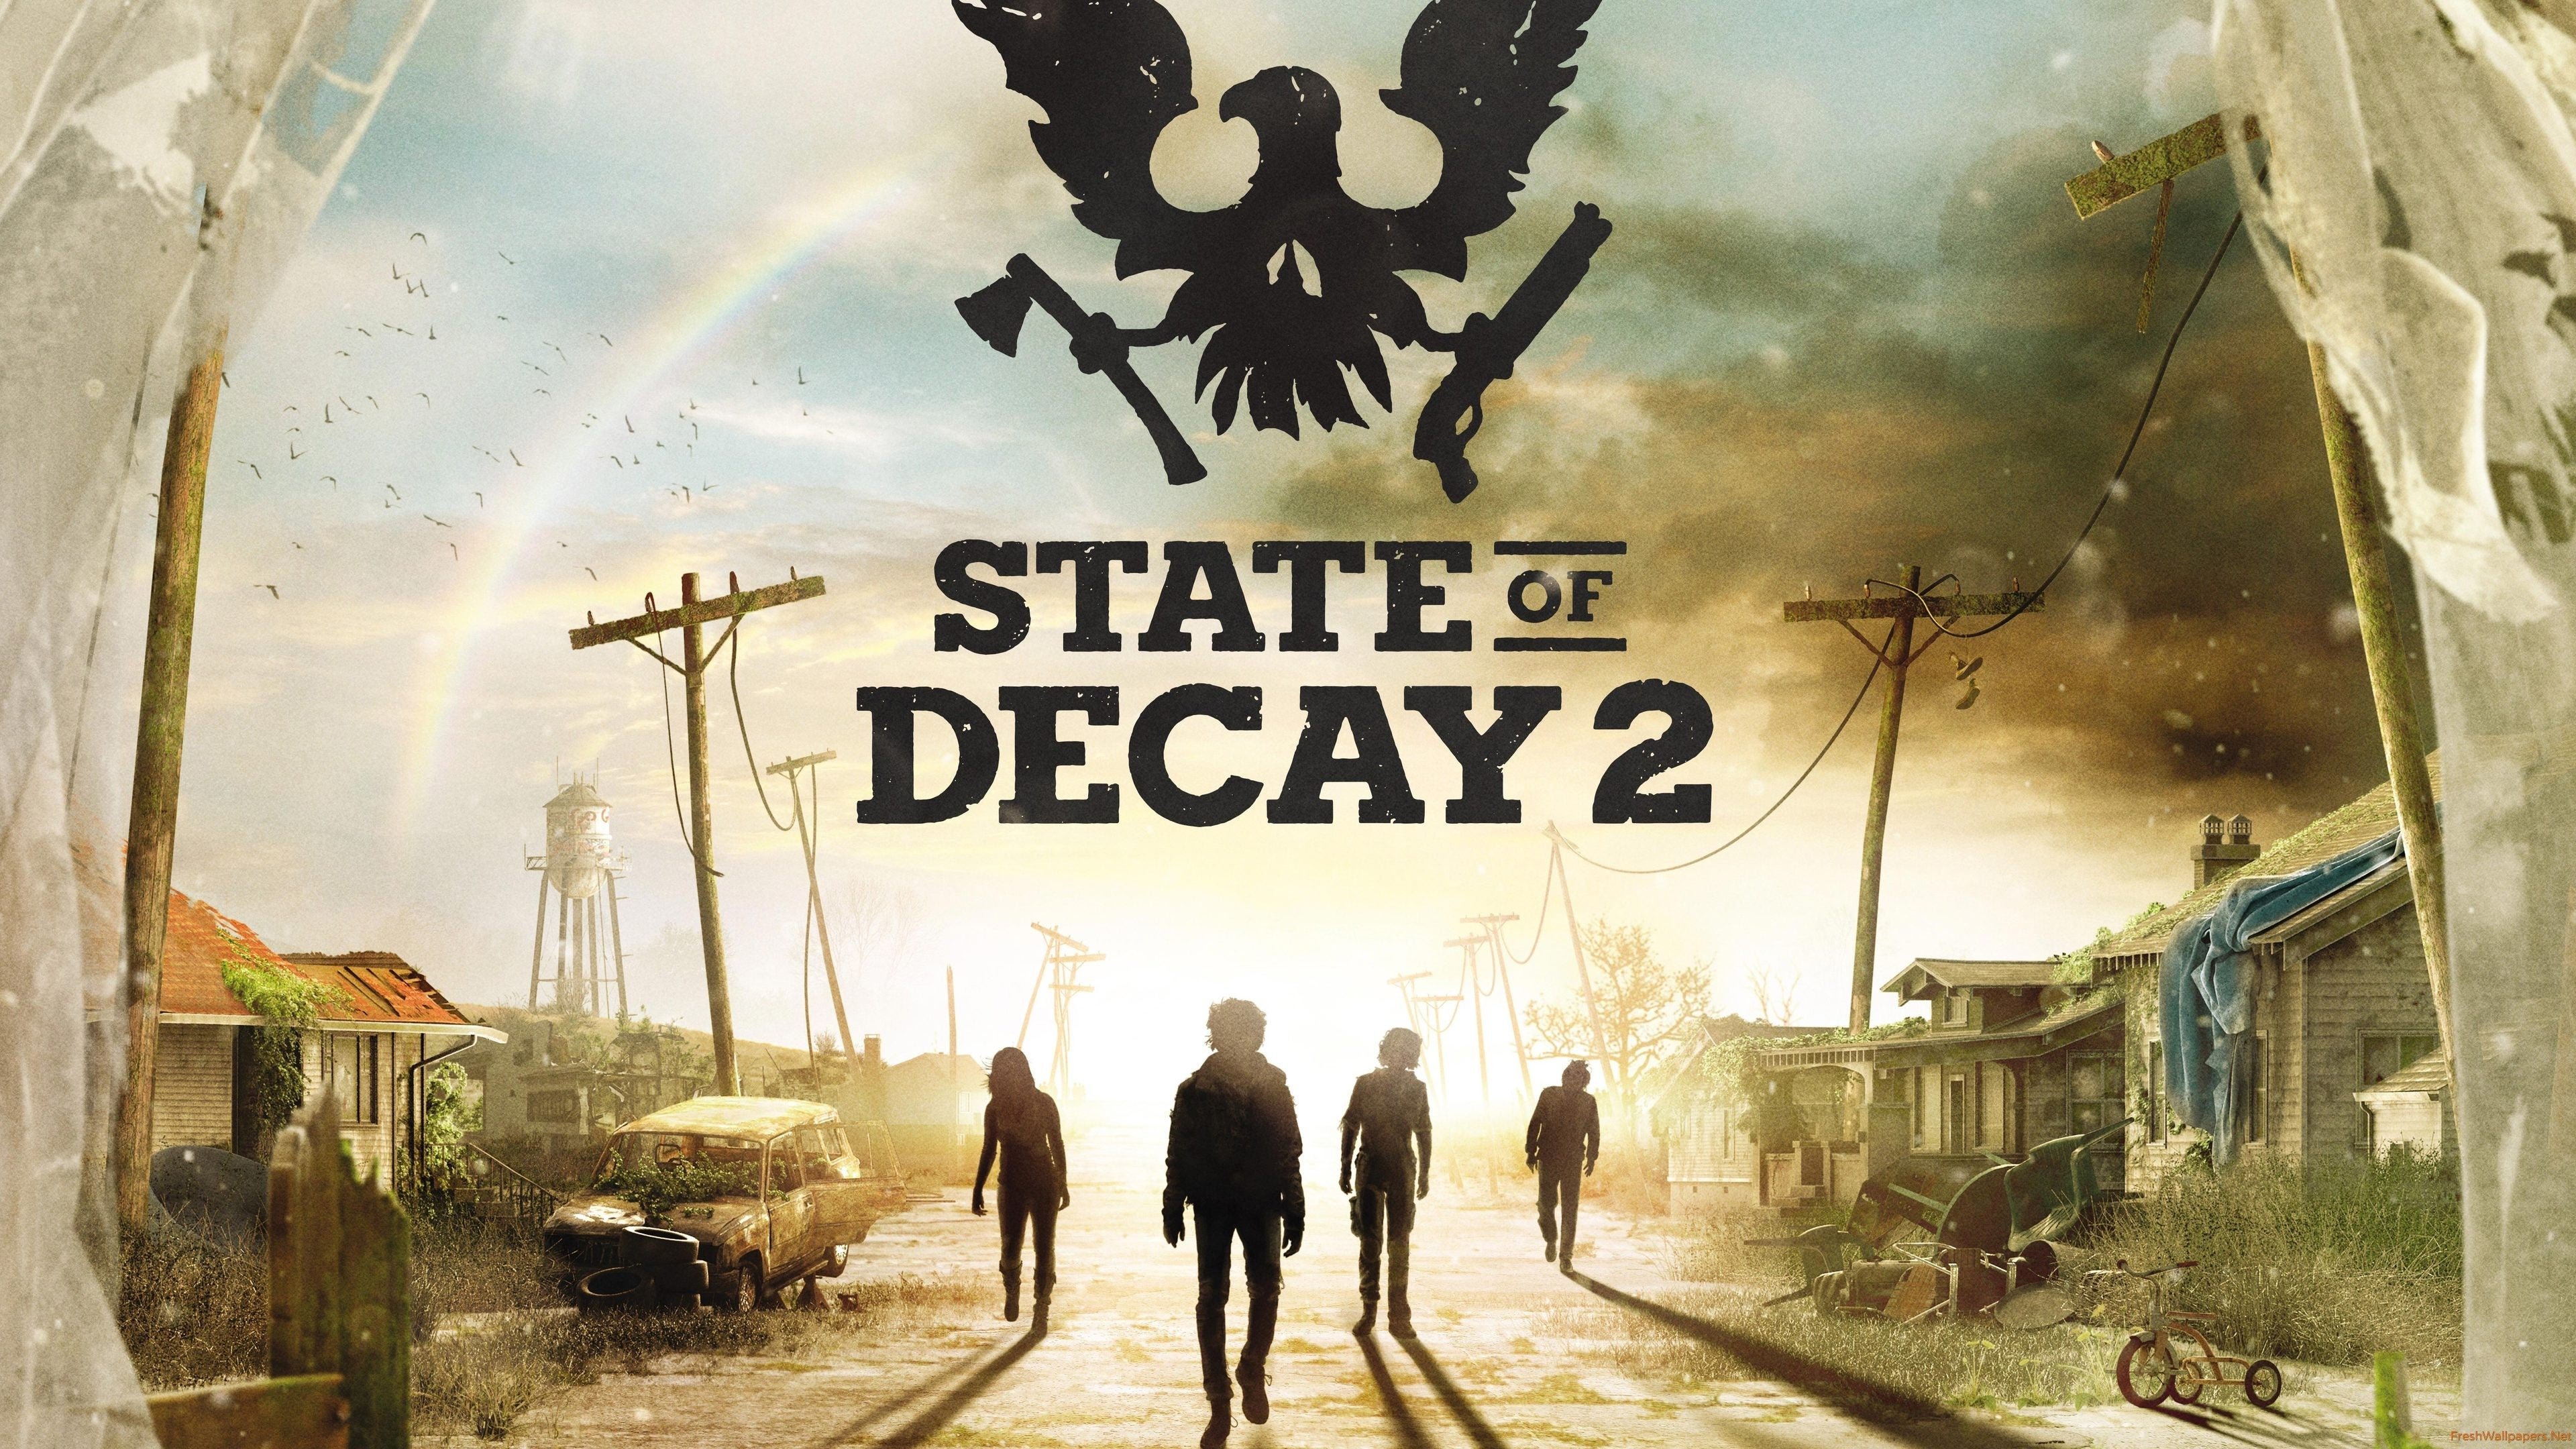 State Of Decay 2 Release Date Announced Trusted Reviews